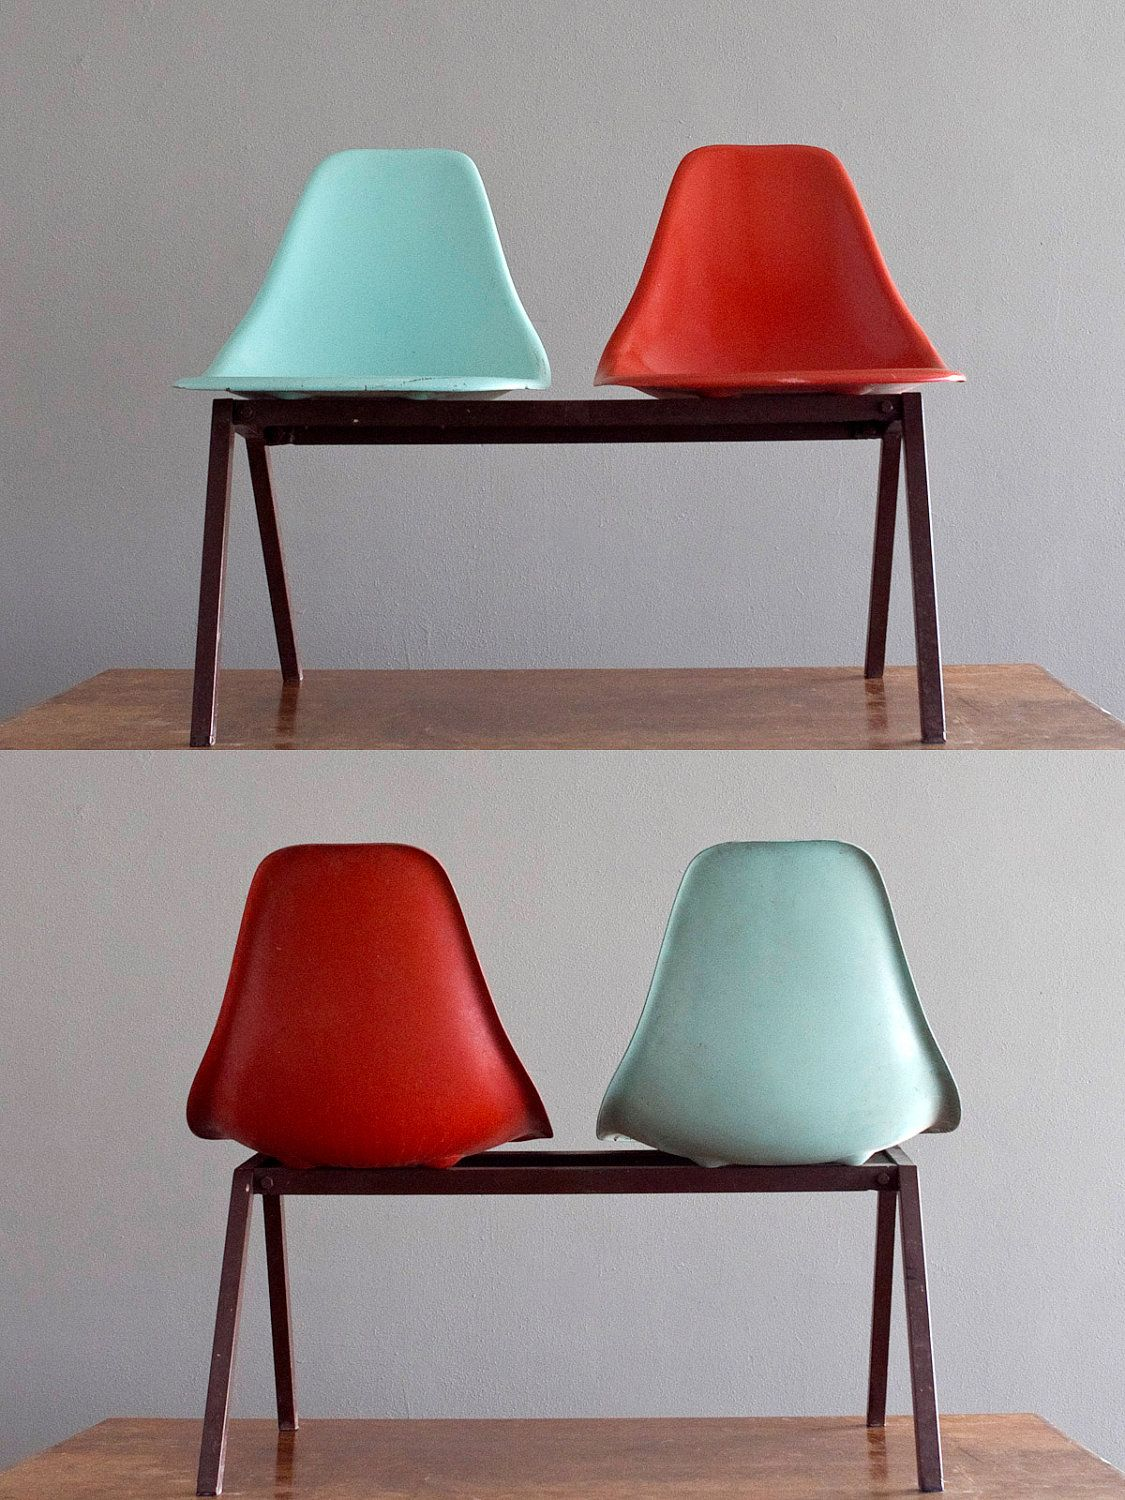 1950's Laundromat Shell Chairs in Turquoise & Red ...